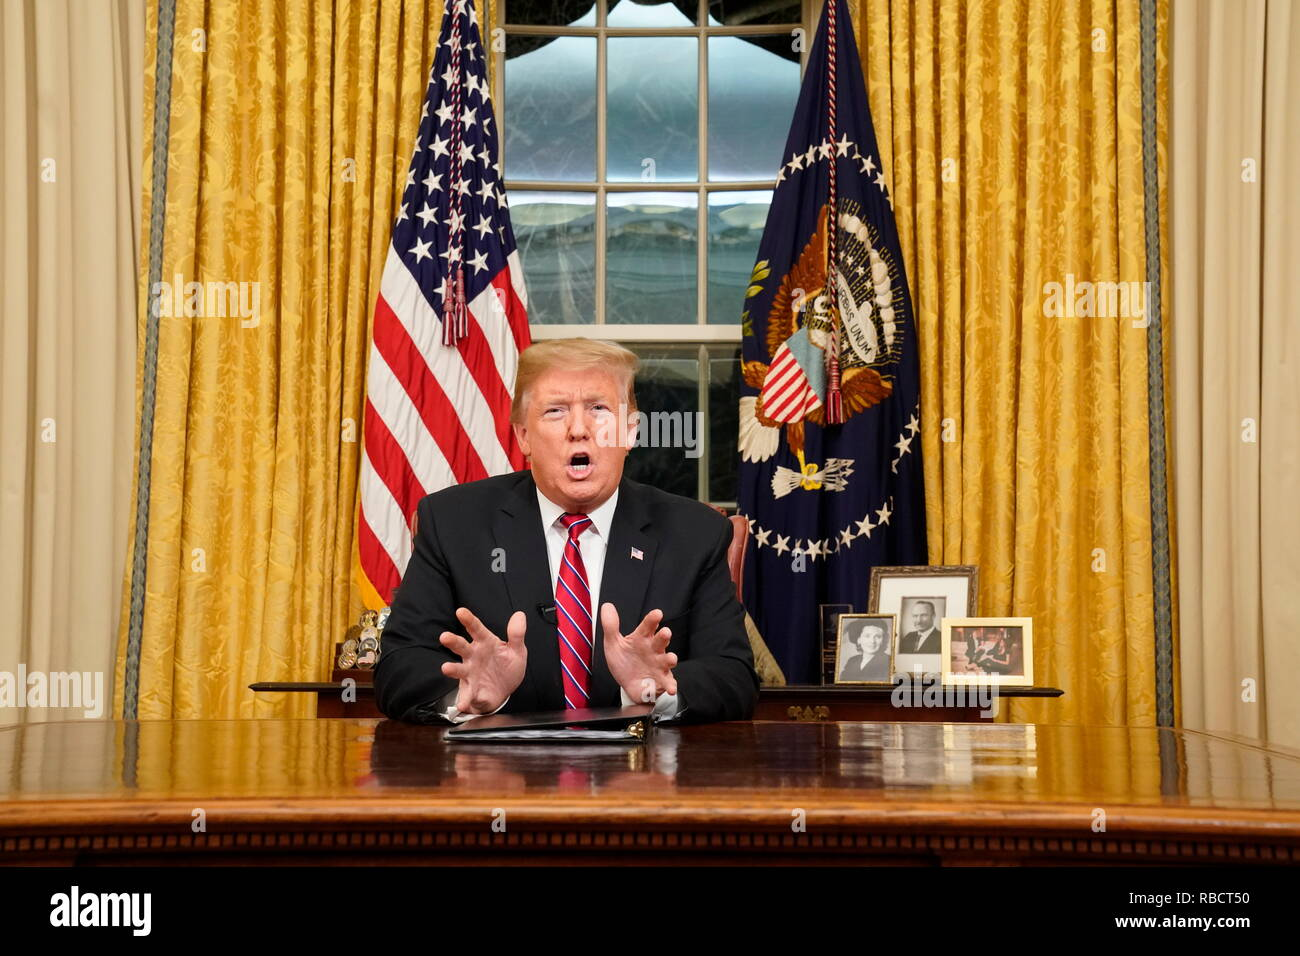 Washington, DC, USA. 08th Jan, 2019. U.S. President Donald Trump speaks to the nation in his first-prime address from the Oval Office of the White House on January 8, 2019 in Washington, DC. A partial shutdown of the federal government has gone on for 17 days following the president's demand for $5.7 billion for a border wall while Democrats have refused. ( Credit: Carlos Barria Pool/Getty Images) Credit: Carlos Barria/Pool Via Cnp/Media Punch/Alamy Live News - Stock Image